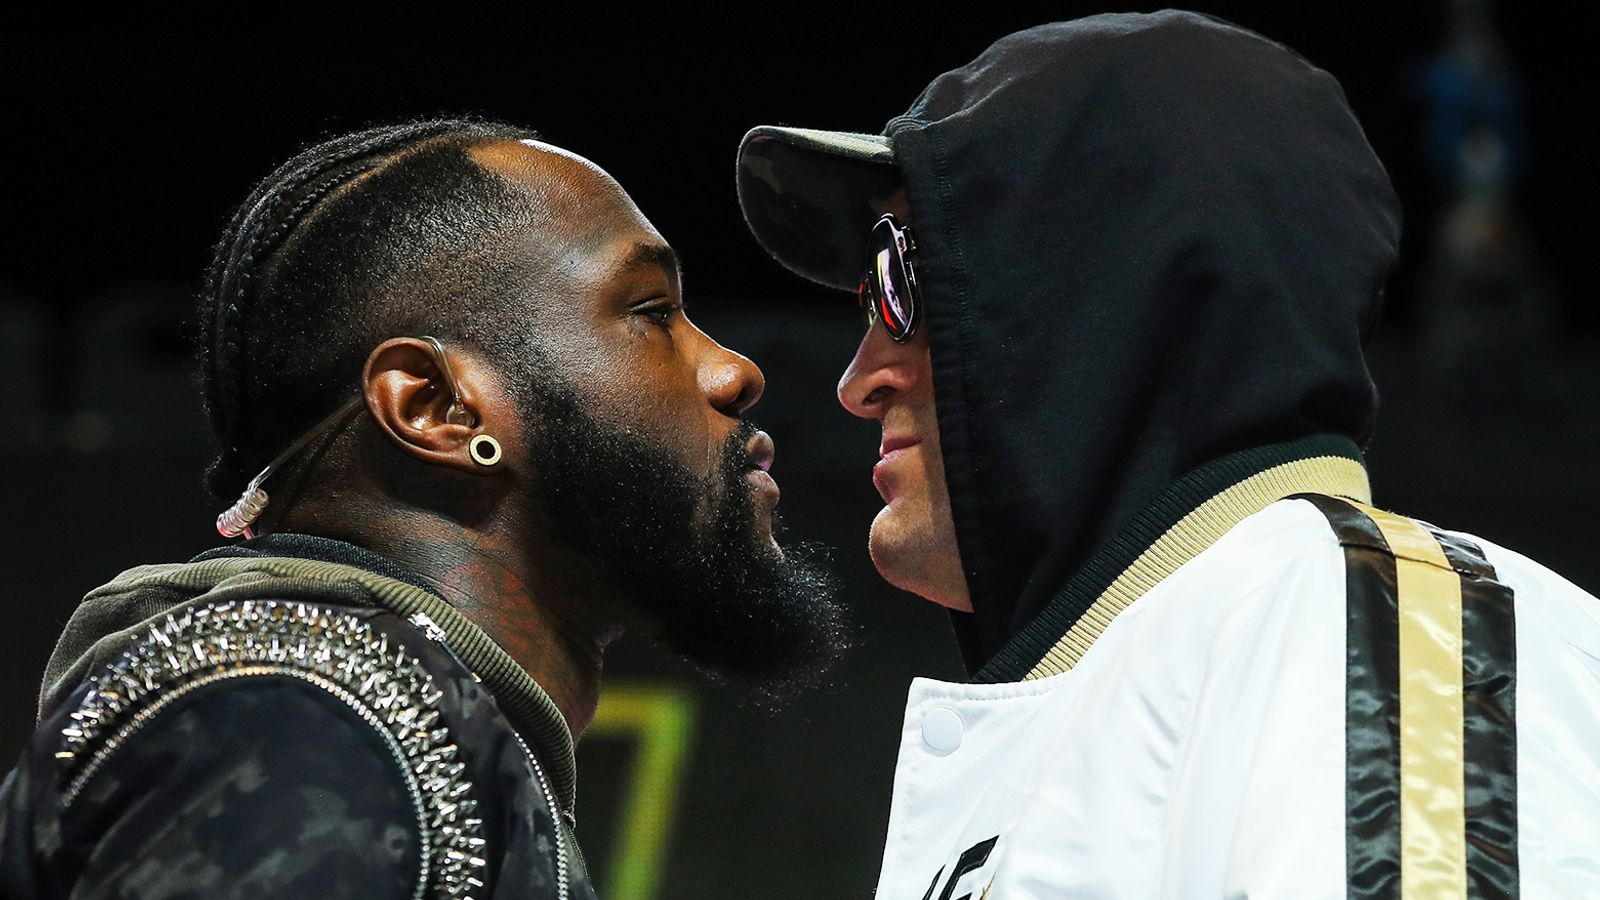 Wilder vs Fury 2: Ultimate redemption the prize for Tyson Fury if he can overcome terrifying Deontay Wilder